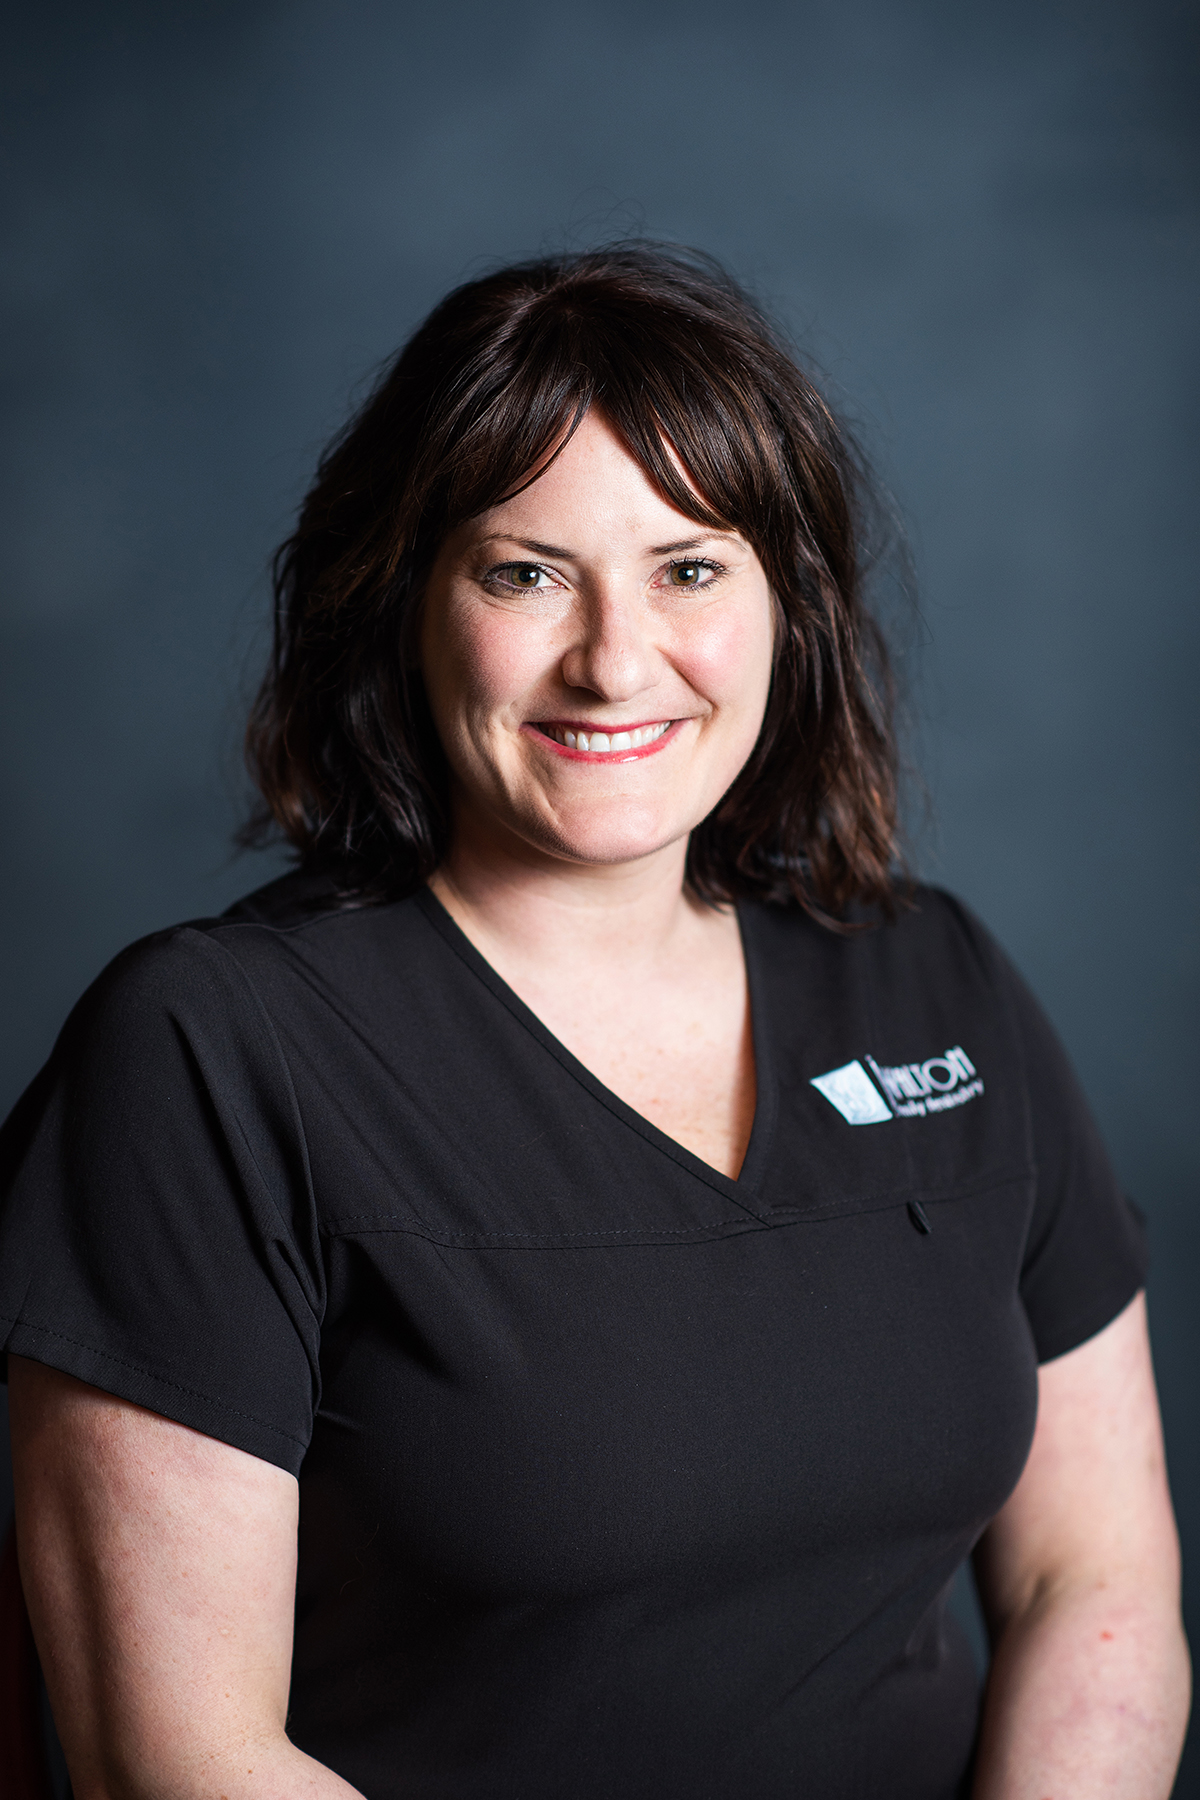 Dental hygienist Amy Simpson